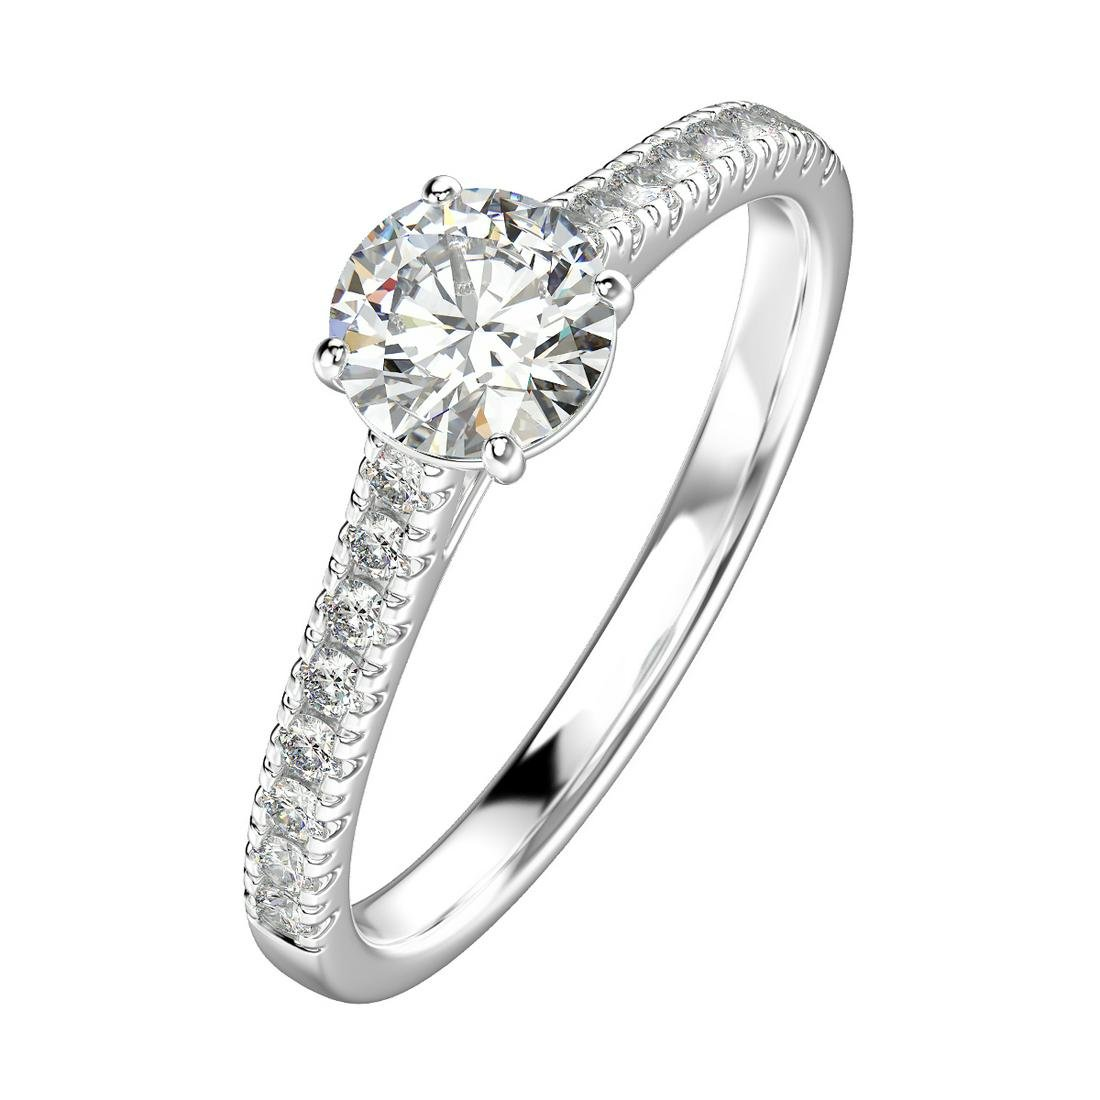 0.94 Carat Platinum Engagement Ring With Diamond Band